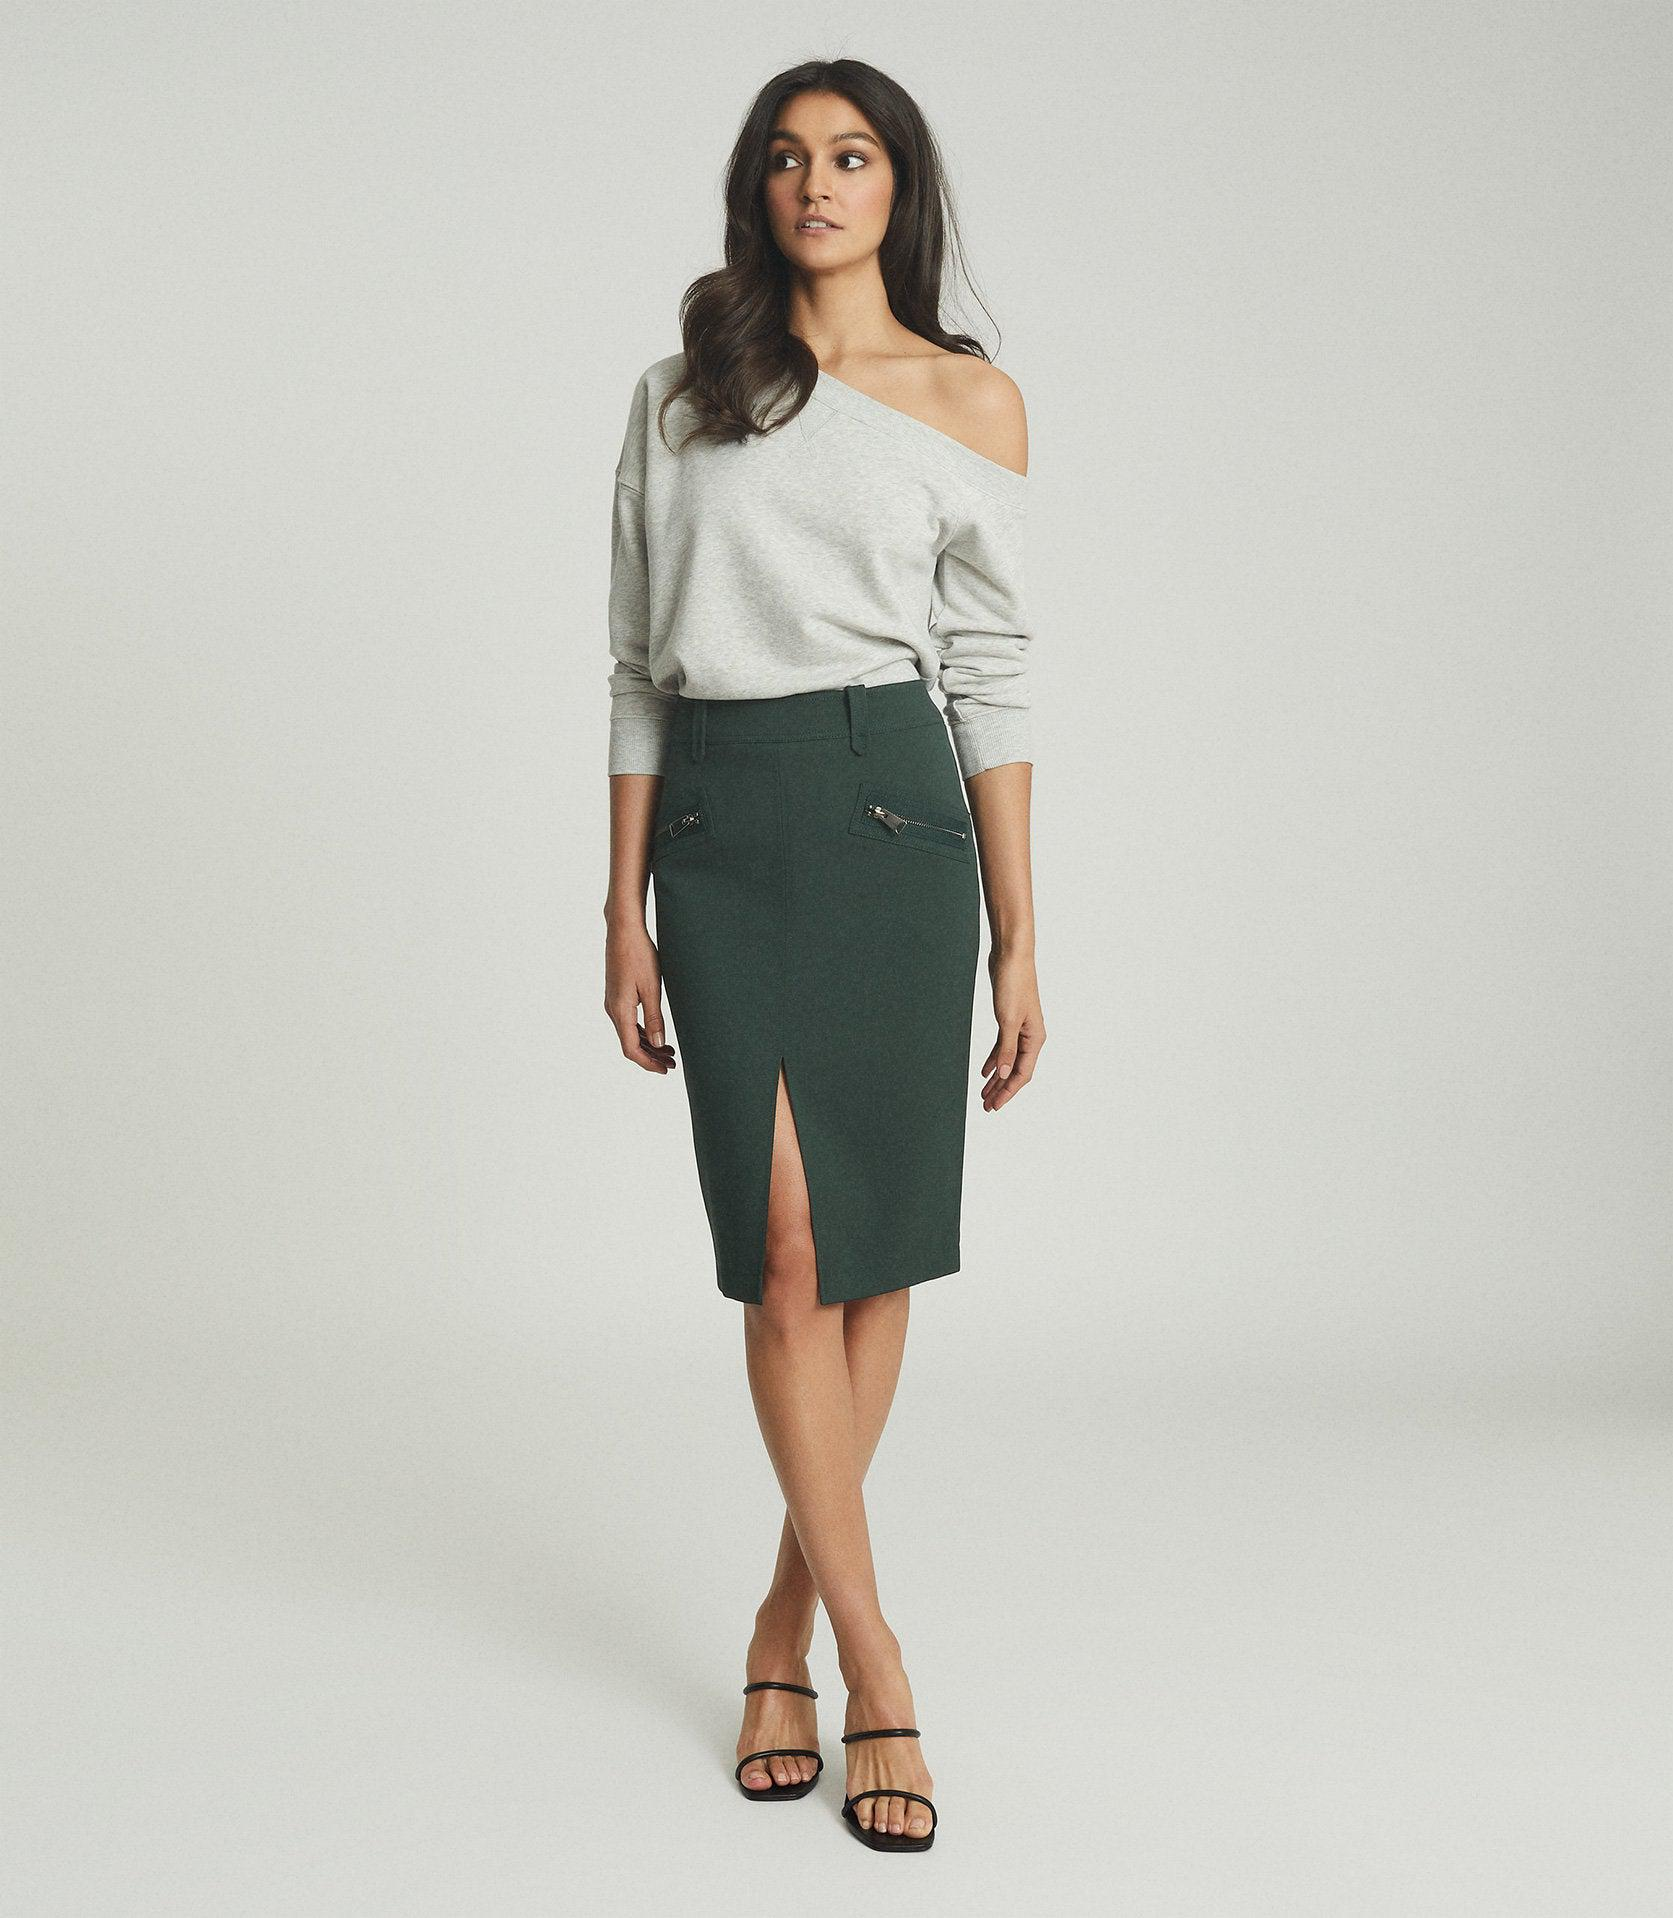 KASSIDY - PENCIL SKIRT WITH ZIP DETAIL